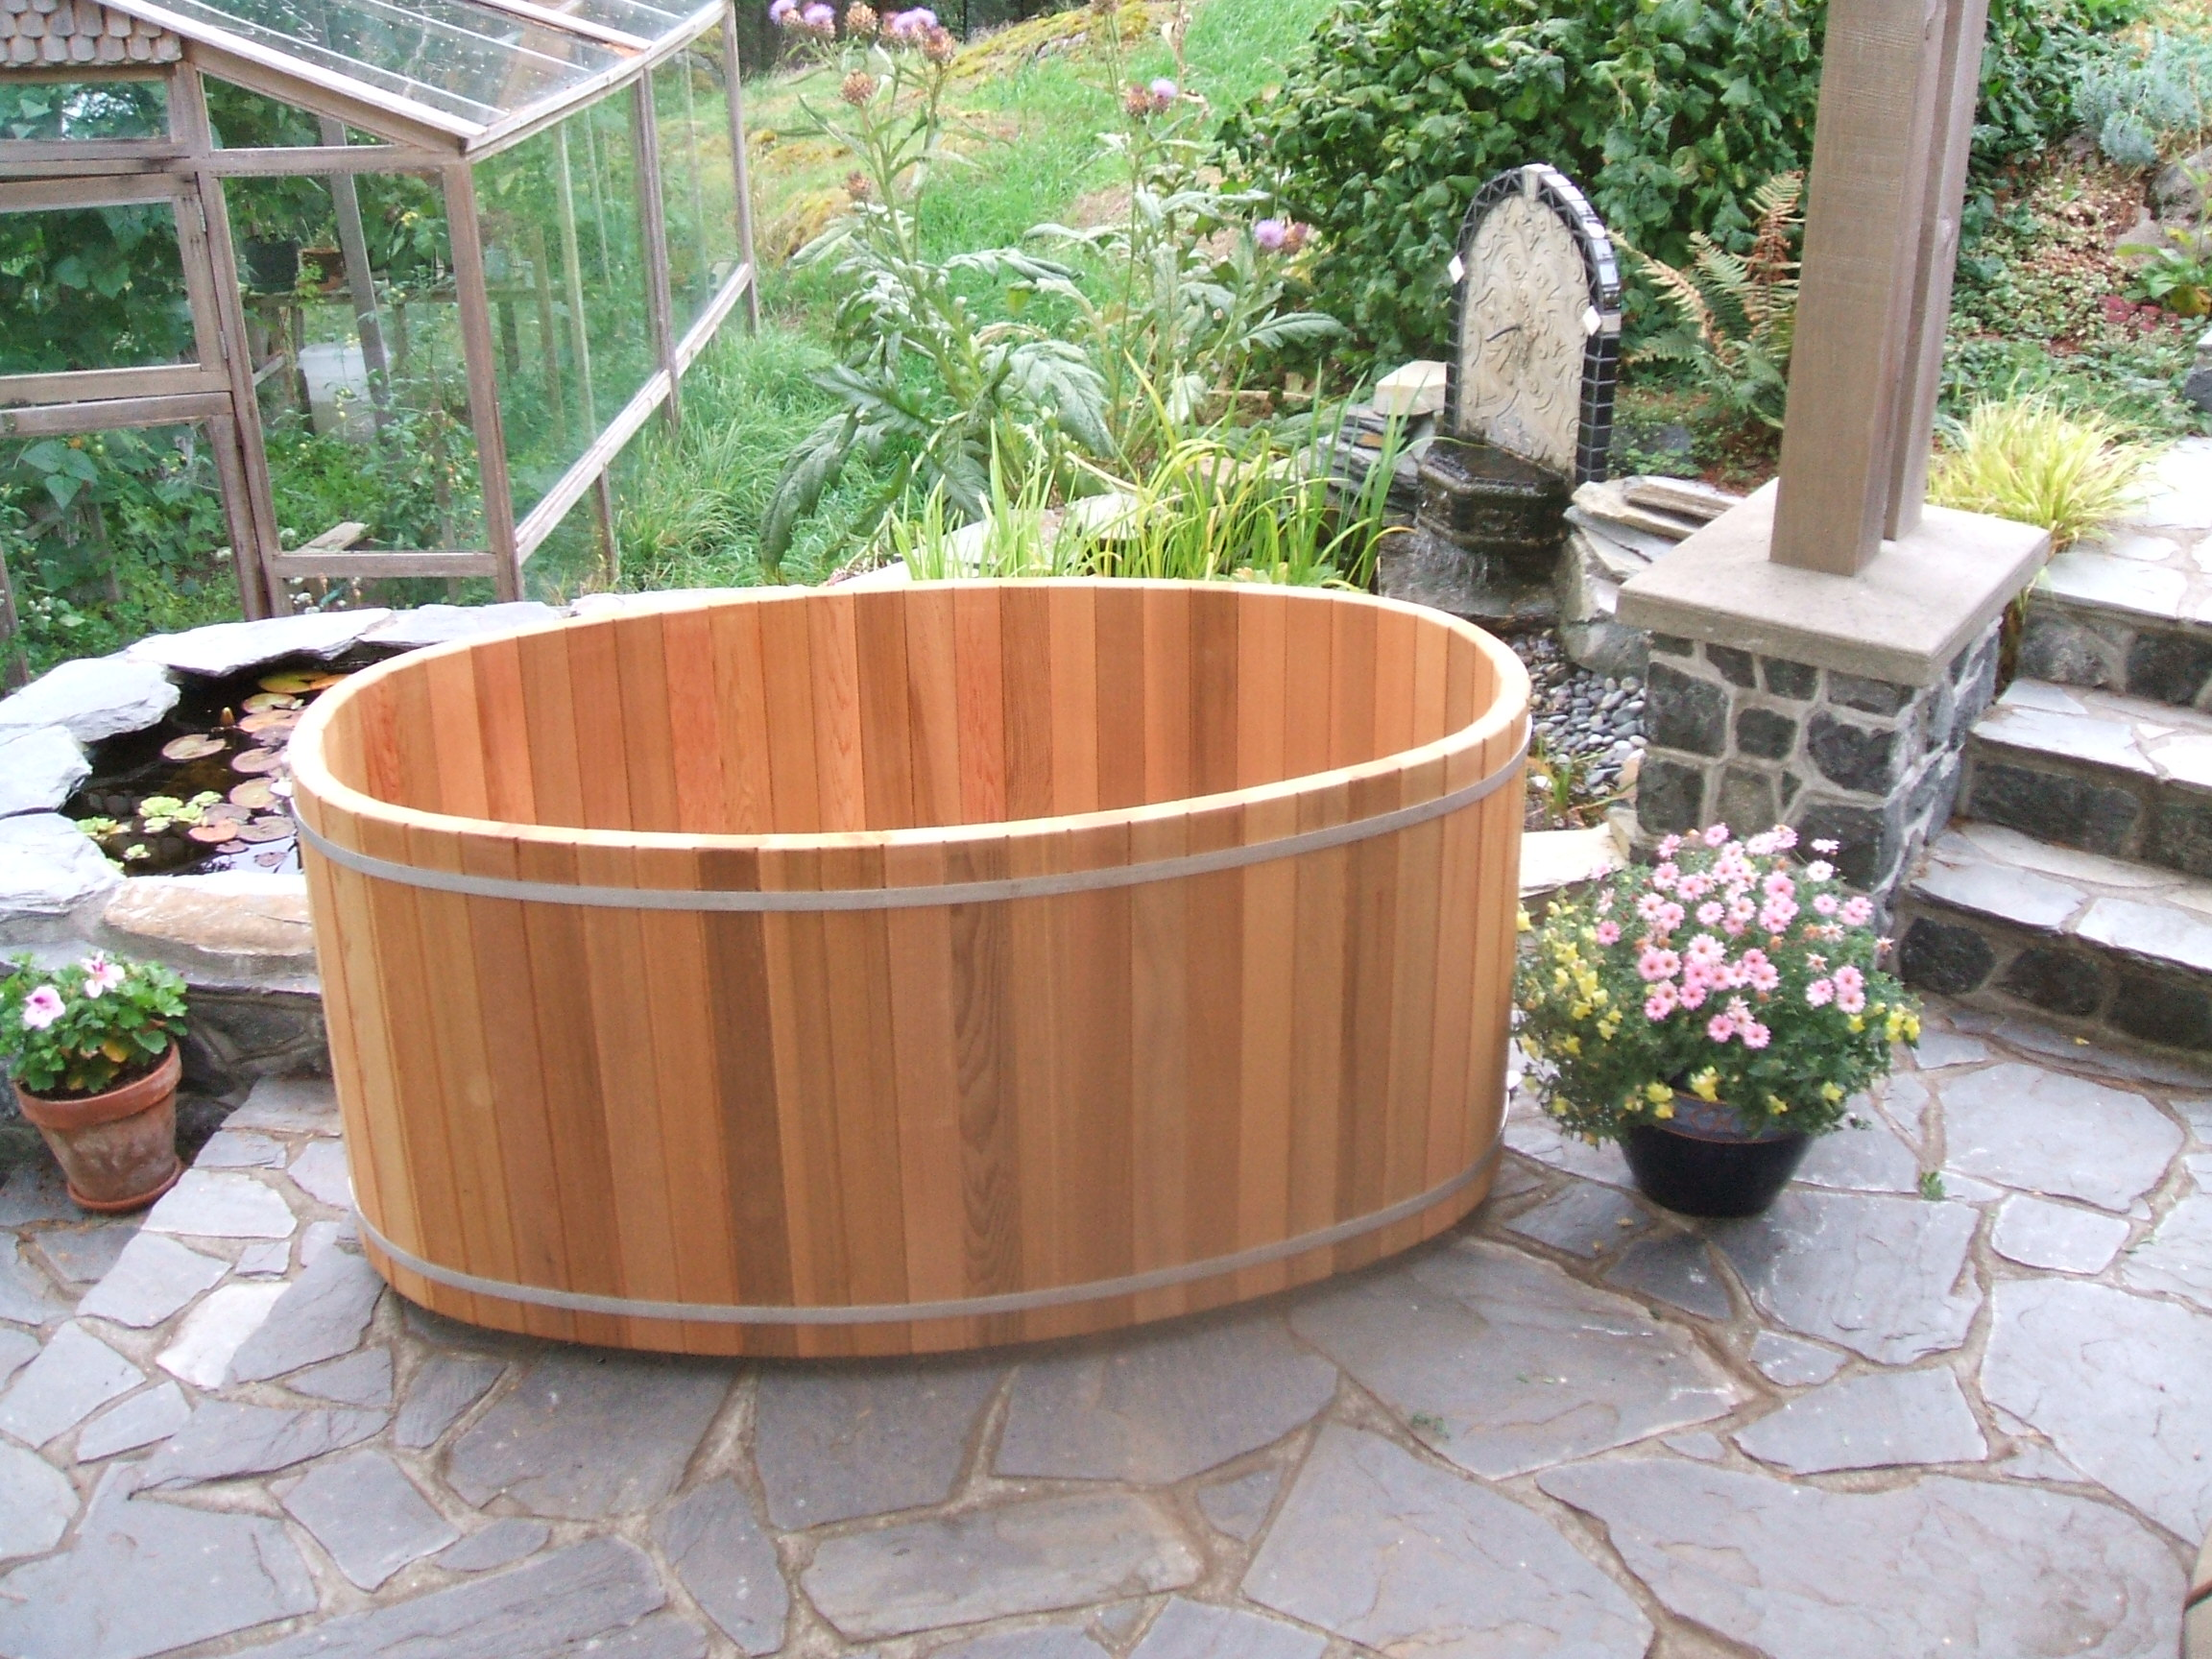 Wood Barrel Round Soaking Tub For Sale - Forest Lumber & Cooperage